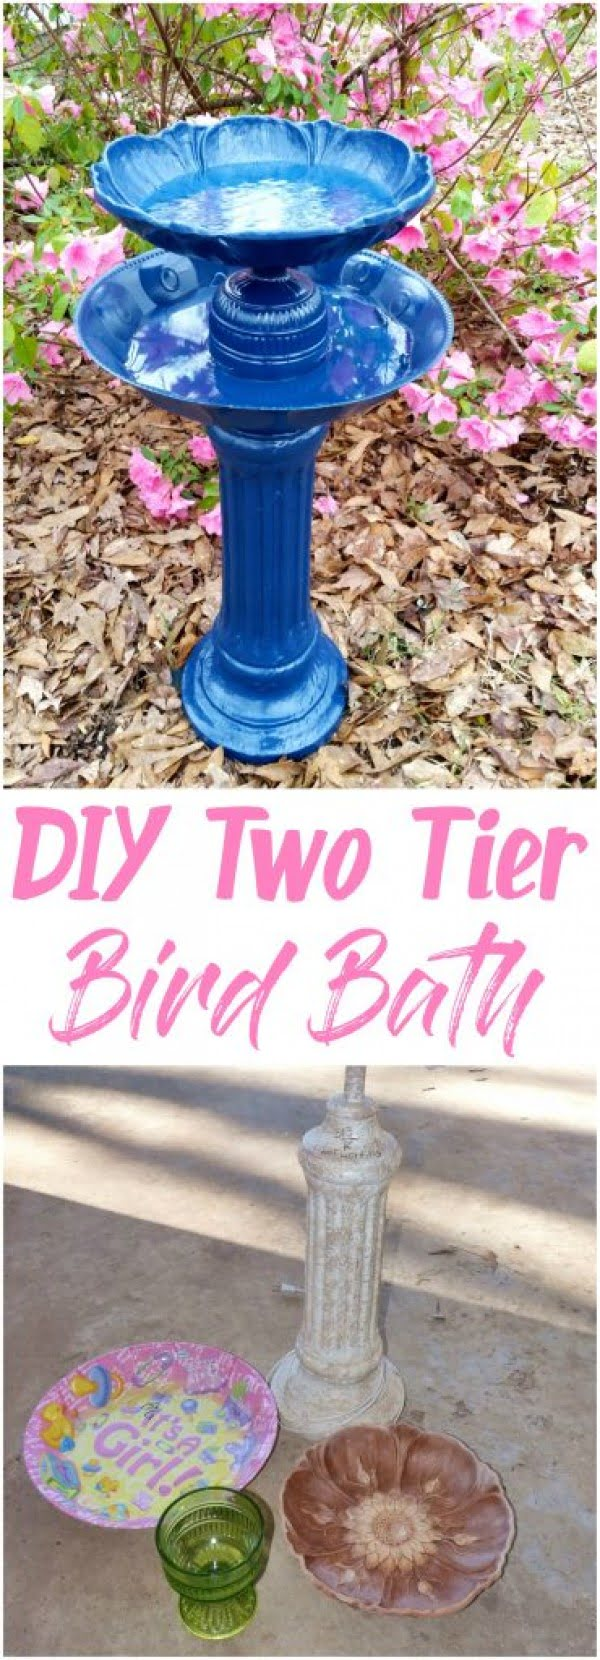 How to Build Your Own Two Tier Bird Bath for $20